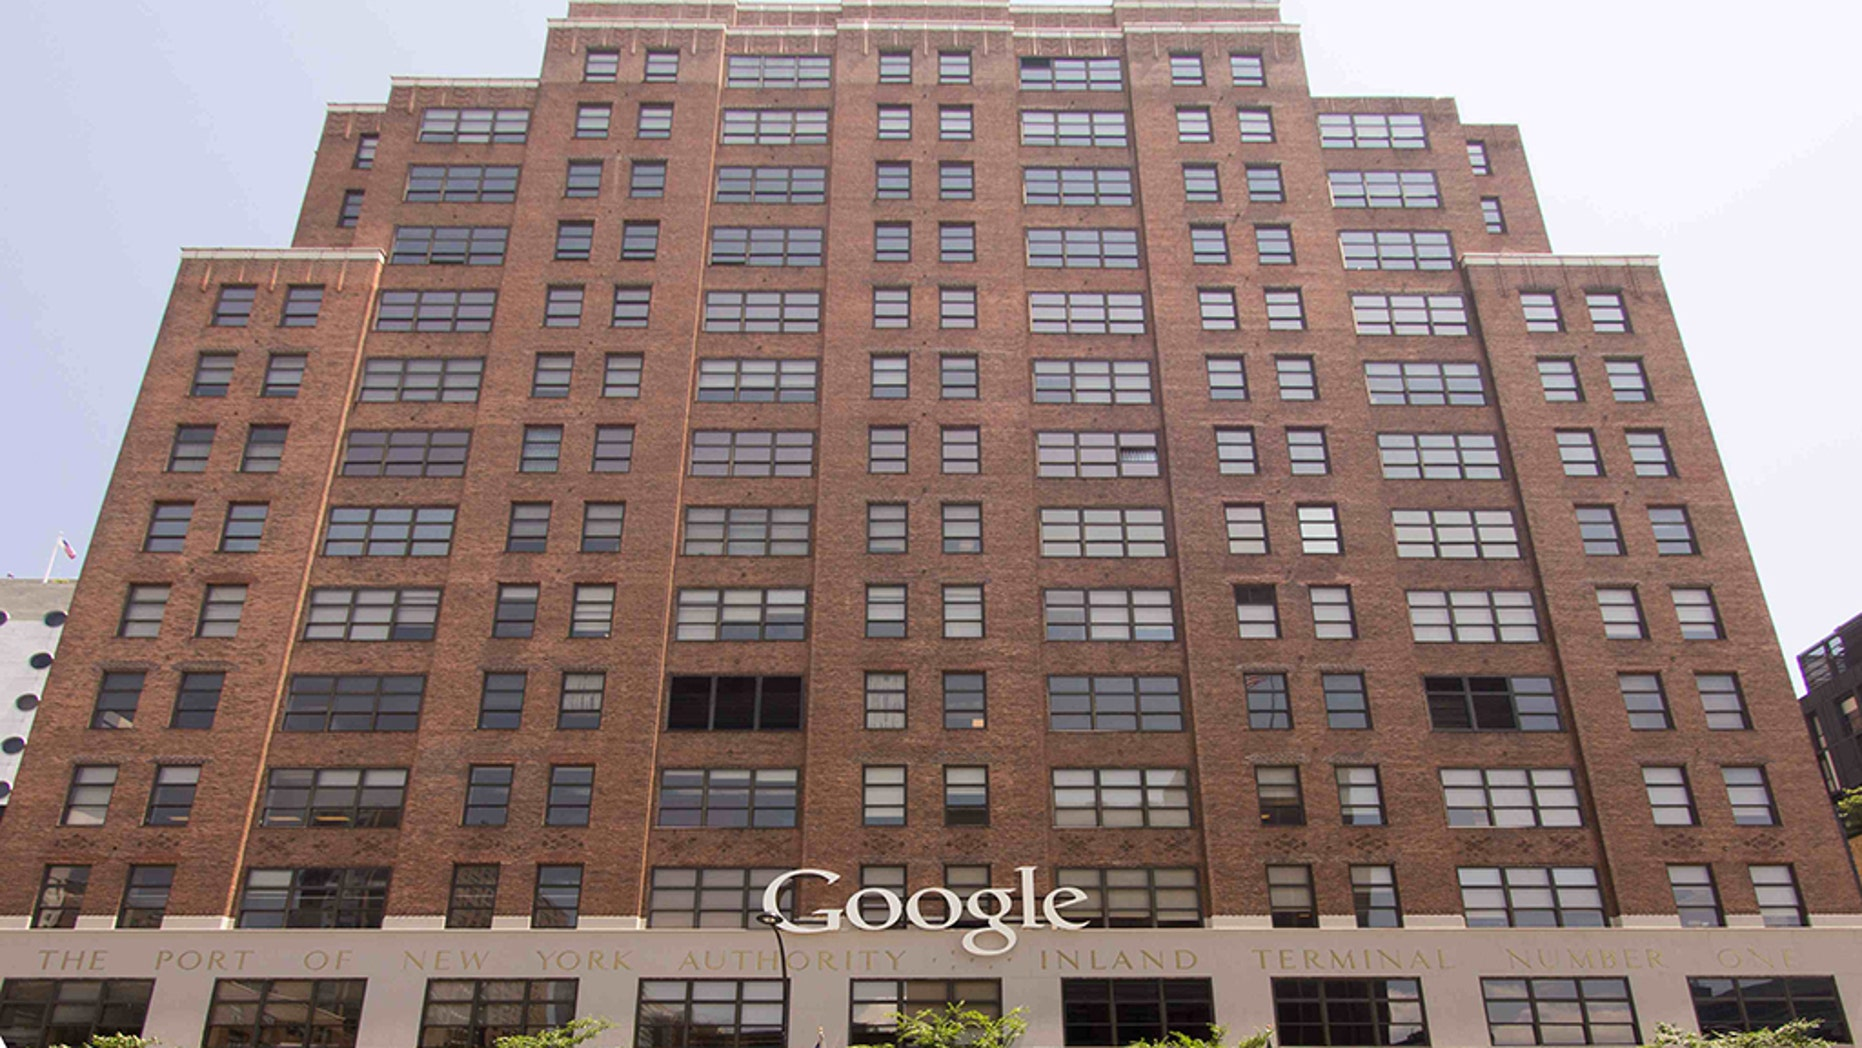 Software engineer found dead in Google's NYC offices